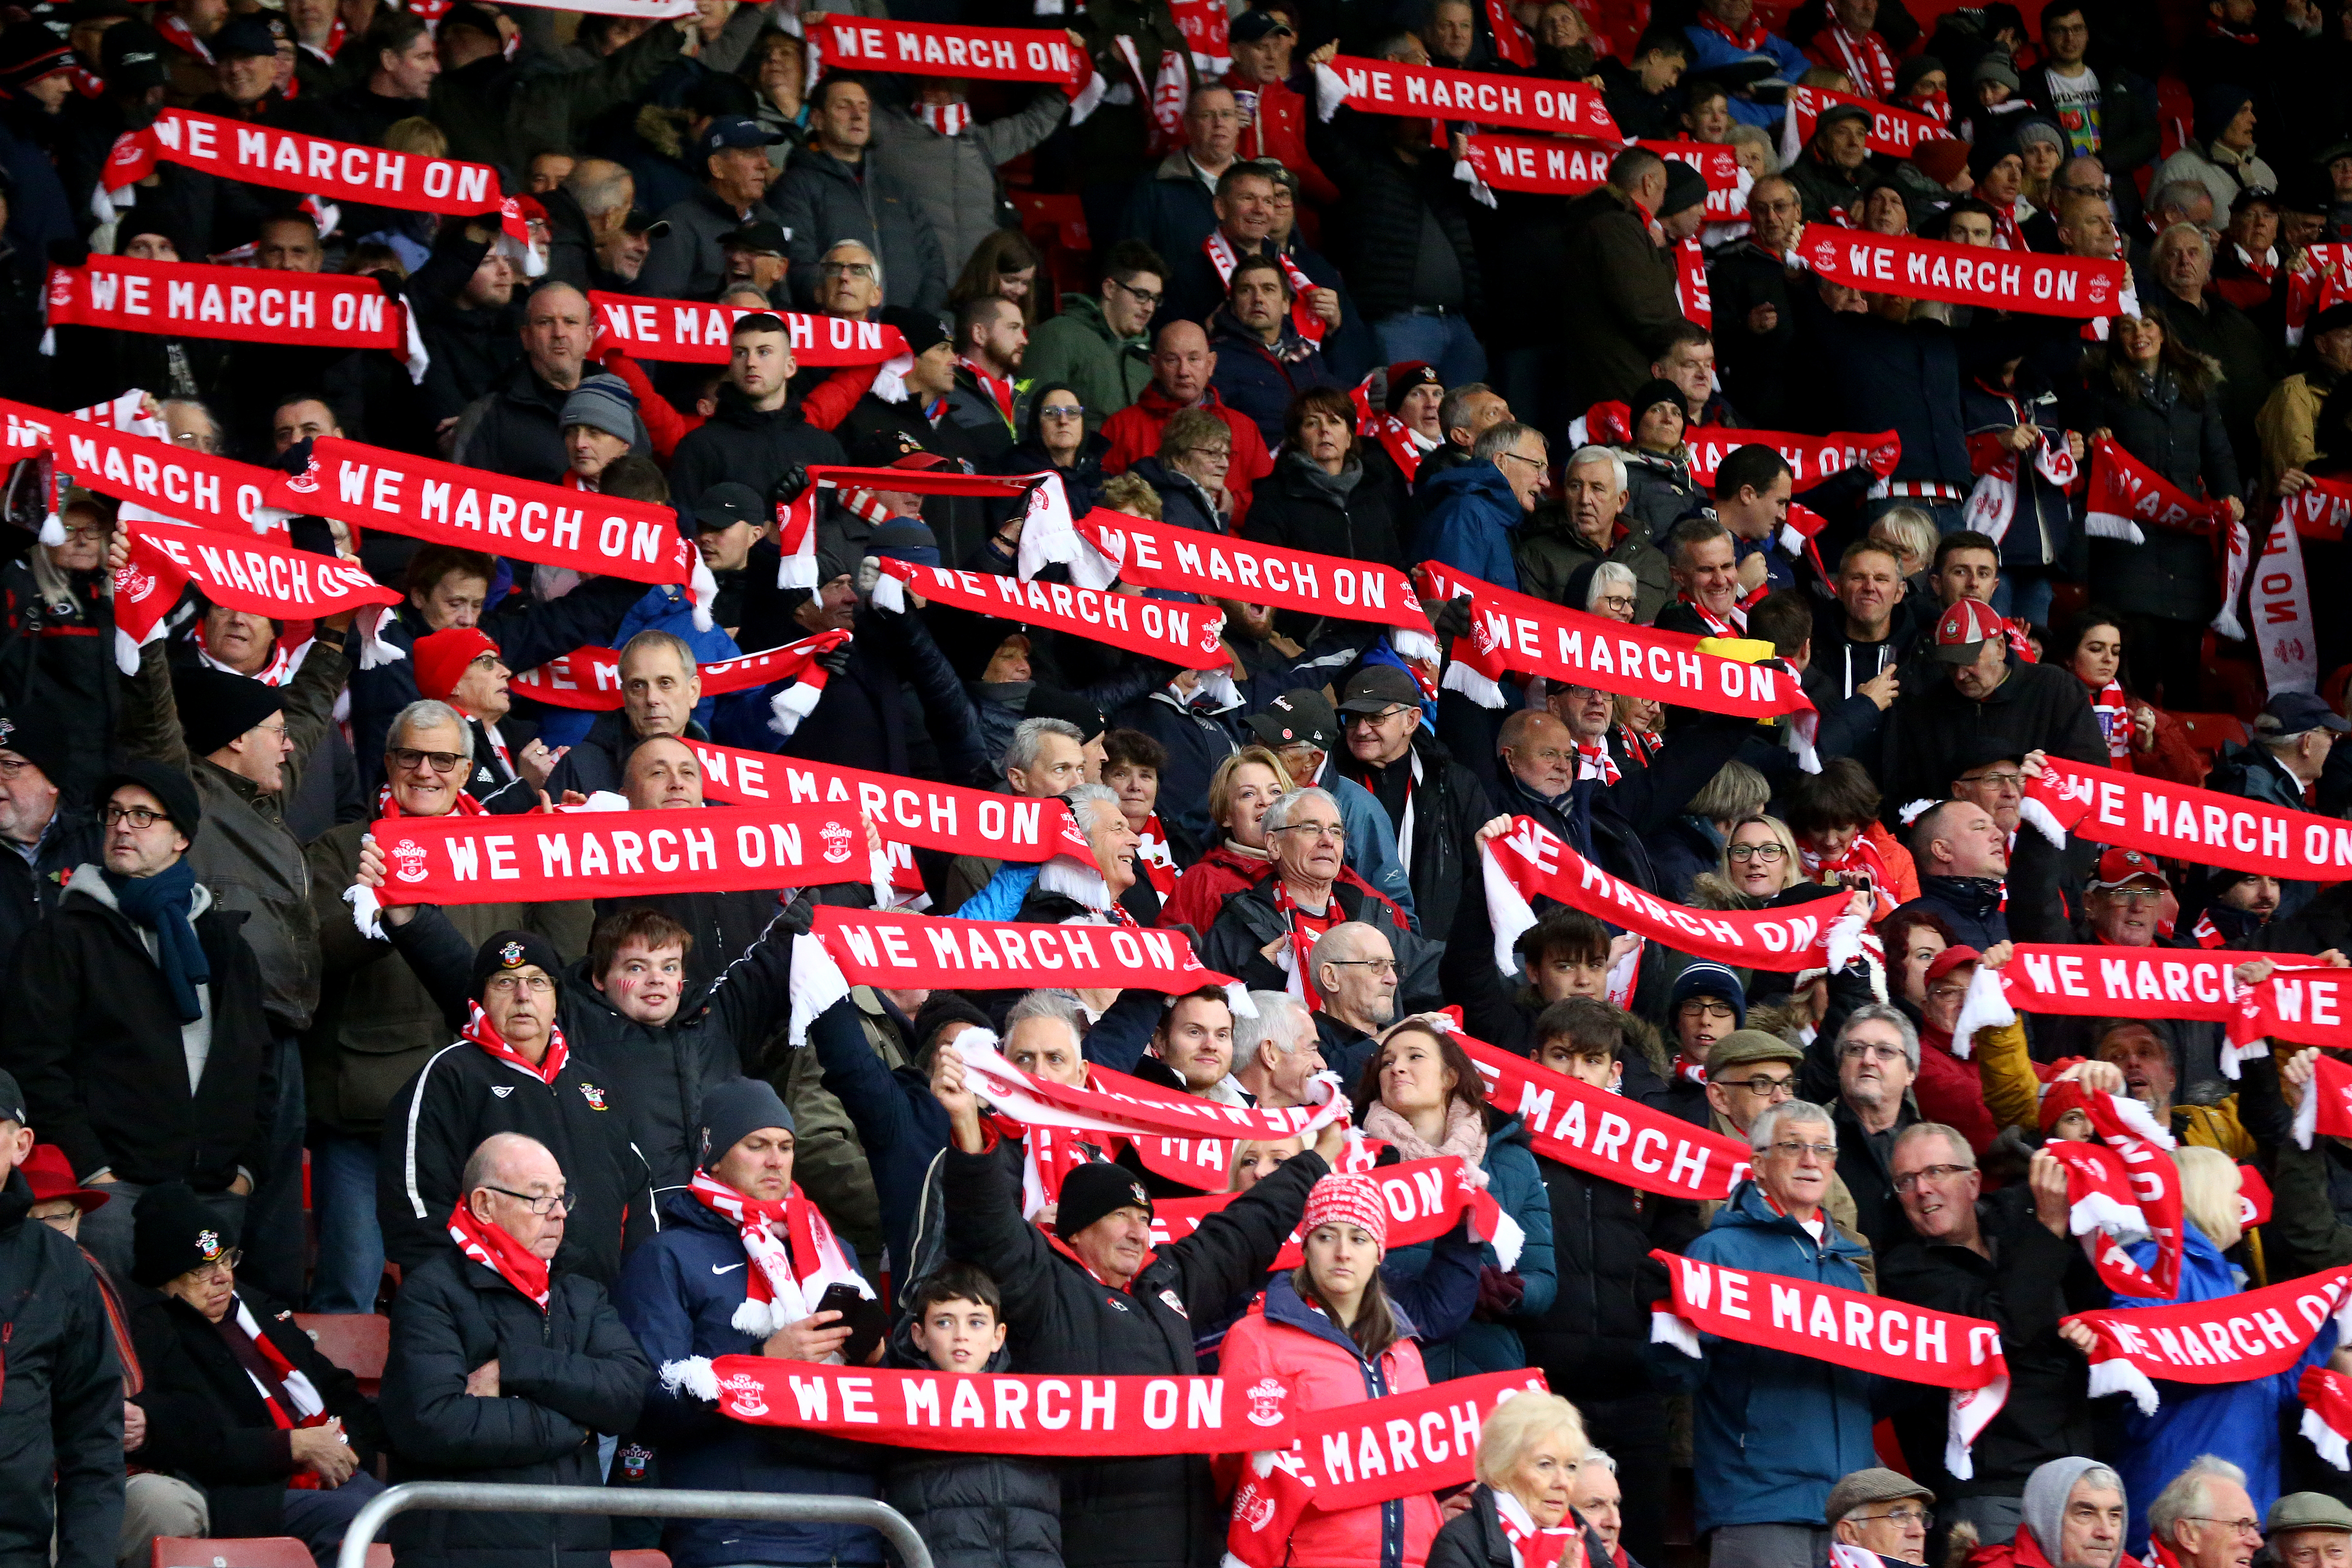 SOUTHAMPTON, ENGLAND - NOVEMBER 09: Saints fans hold up their scarves during the Premier League match between Southampton FC and Everton FC at St Mary's Stadium on November 09, 2019 in Southampton, United Kingdom. (Photo by Matt Watson/Southampton FC via Getty Images)